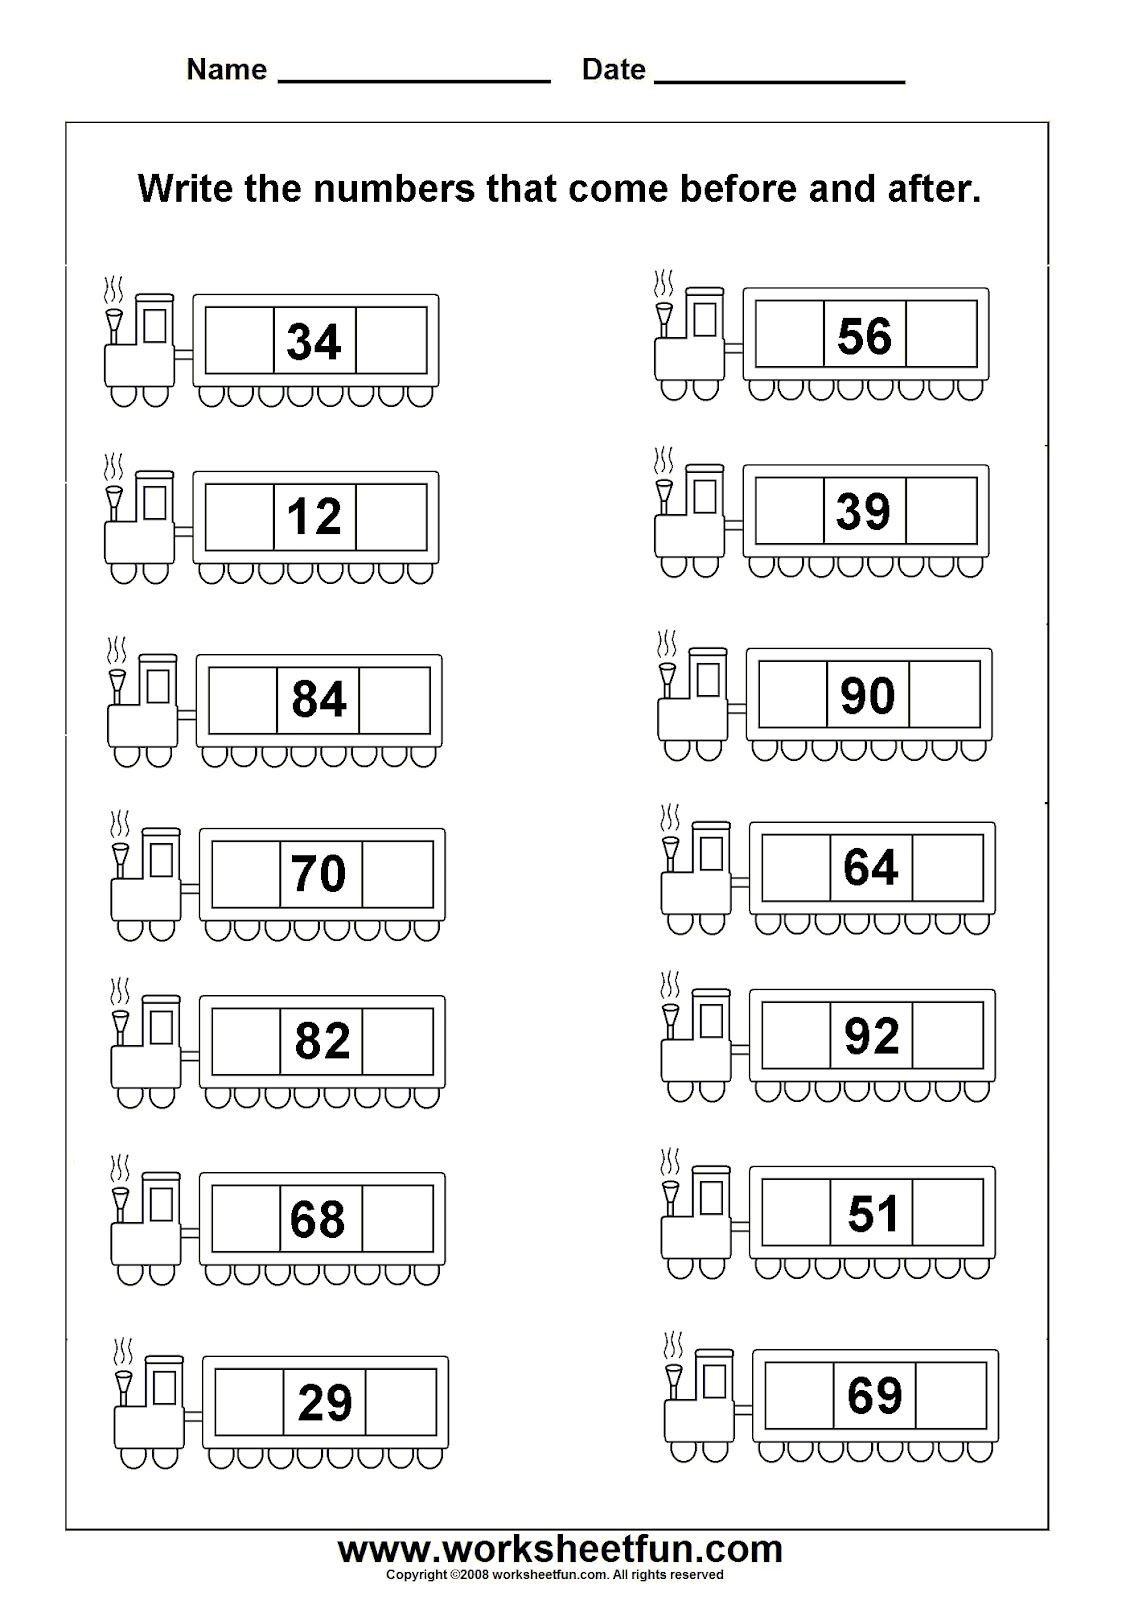 Numbers before and after Worksheet before and after 1 1 130—1 600 Pixels